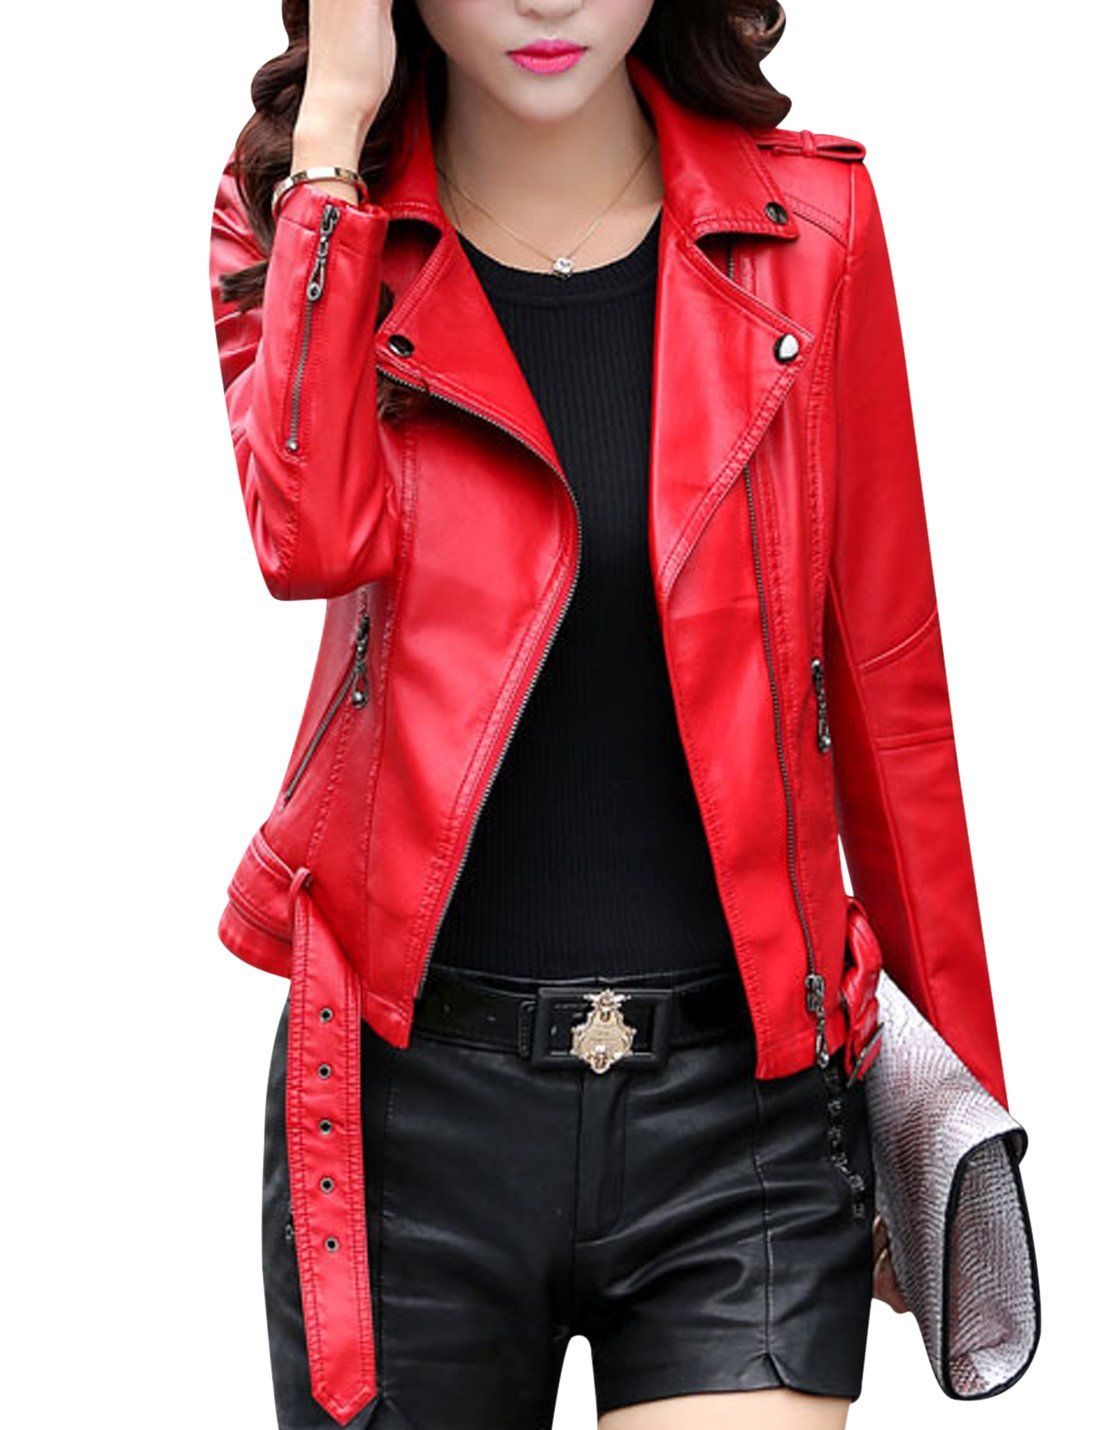 Tanming Women's Classic Style Faux Leather Moto Jacket with Belt (Red, Medium)